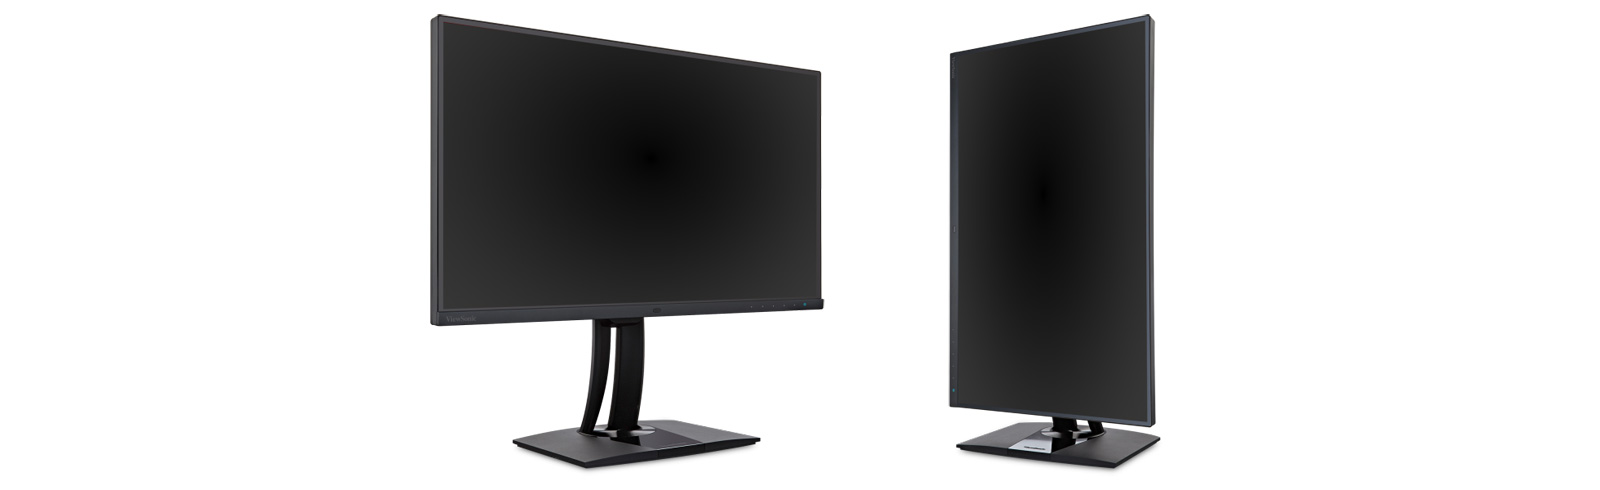 ViewSonic launches a number of new monitors including the VP2785-2K, XG270, VS2412-h and others